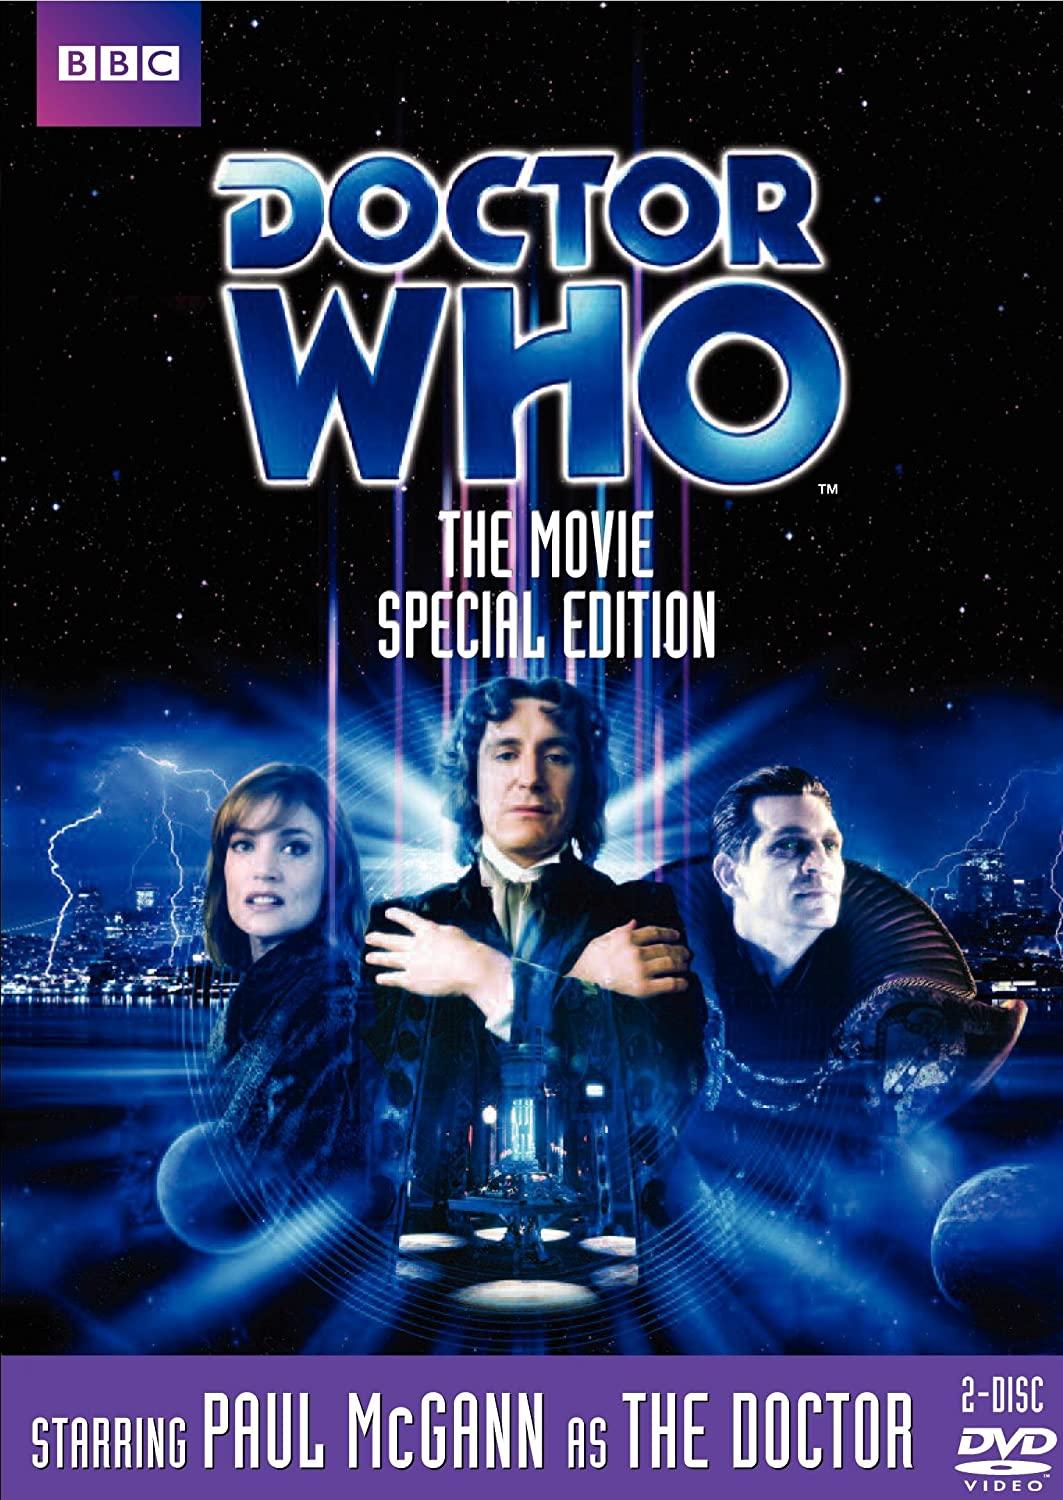 Galaxy 4 doctor who tv movie special edition dvd.